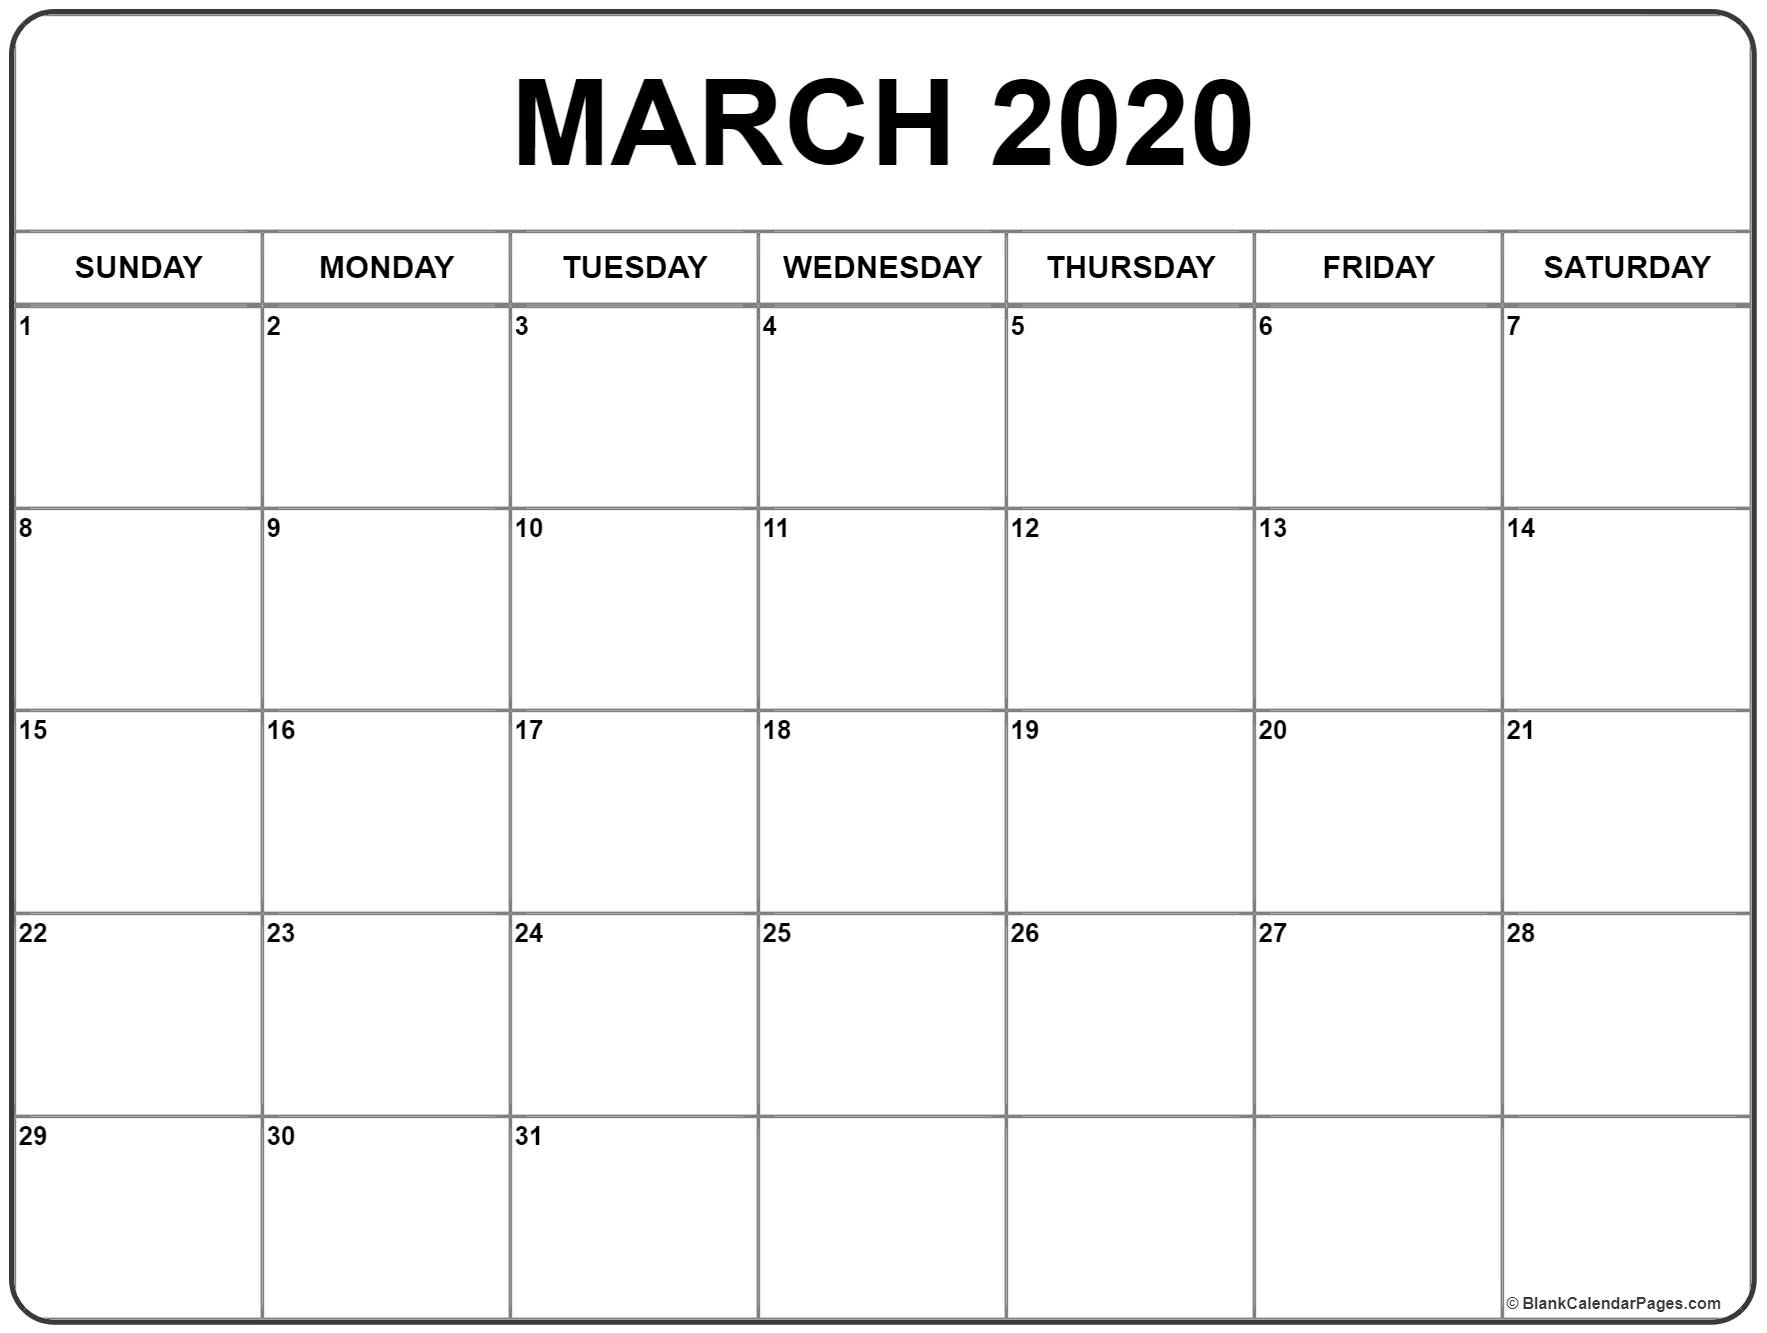 Free Calendar March 2020  Yatay.horizonconsulting.co in Calendars Michel Zbinden 2020